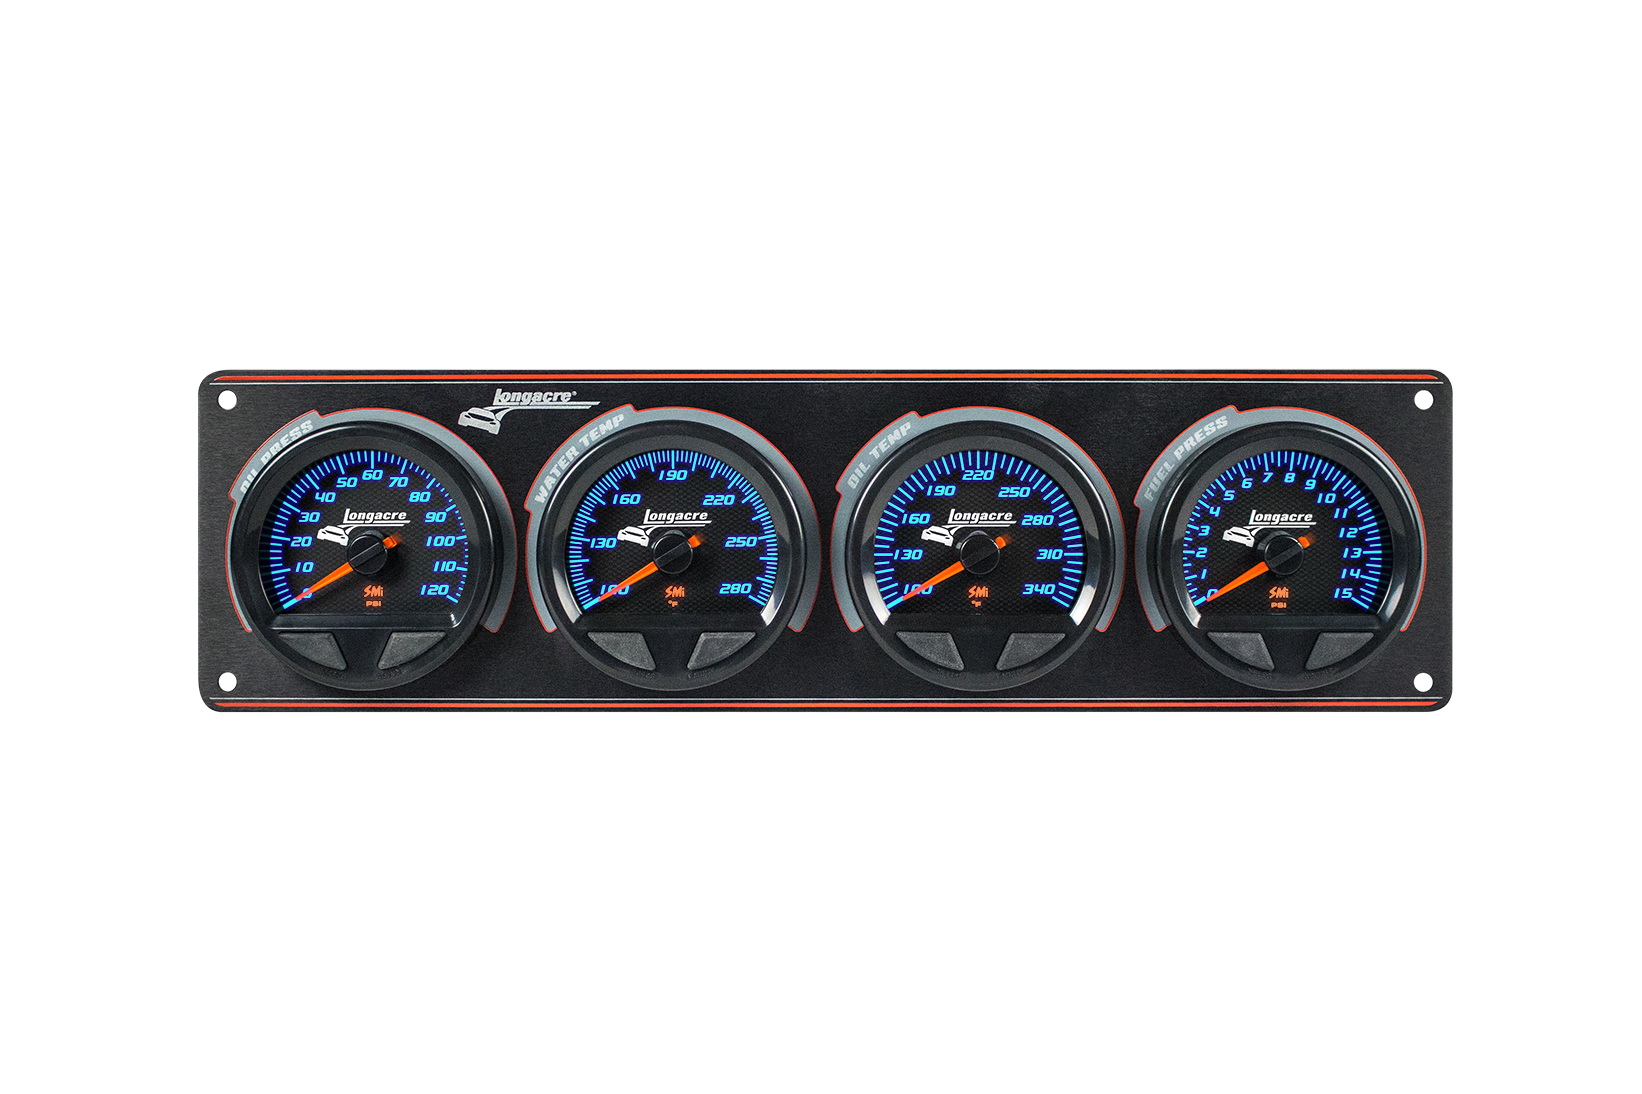 SMi™ Elite Waterproof Gauge Panel, 4 Gauge Oil Pressure/Water Temperature/Oil Temperature/Fuel Pressure 15psi